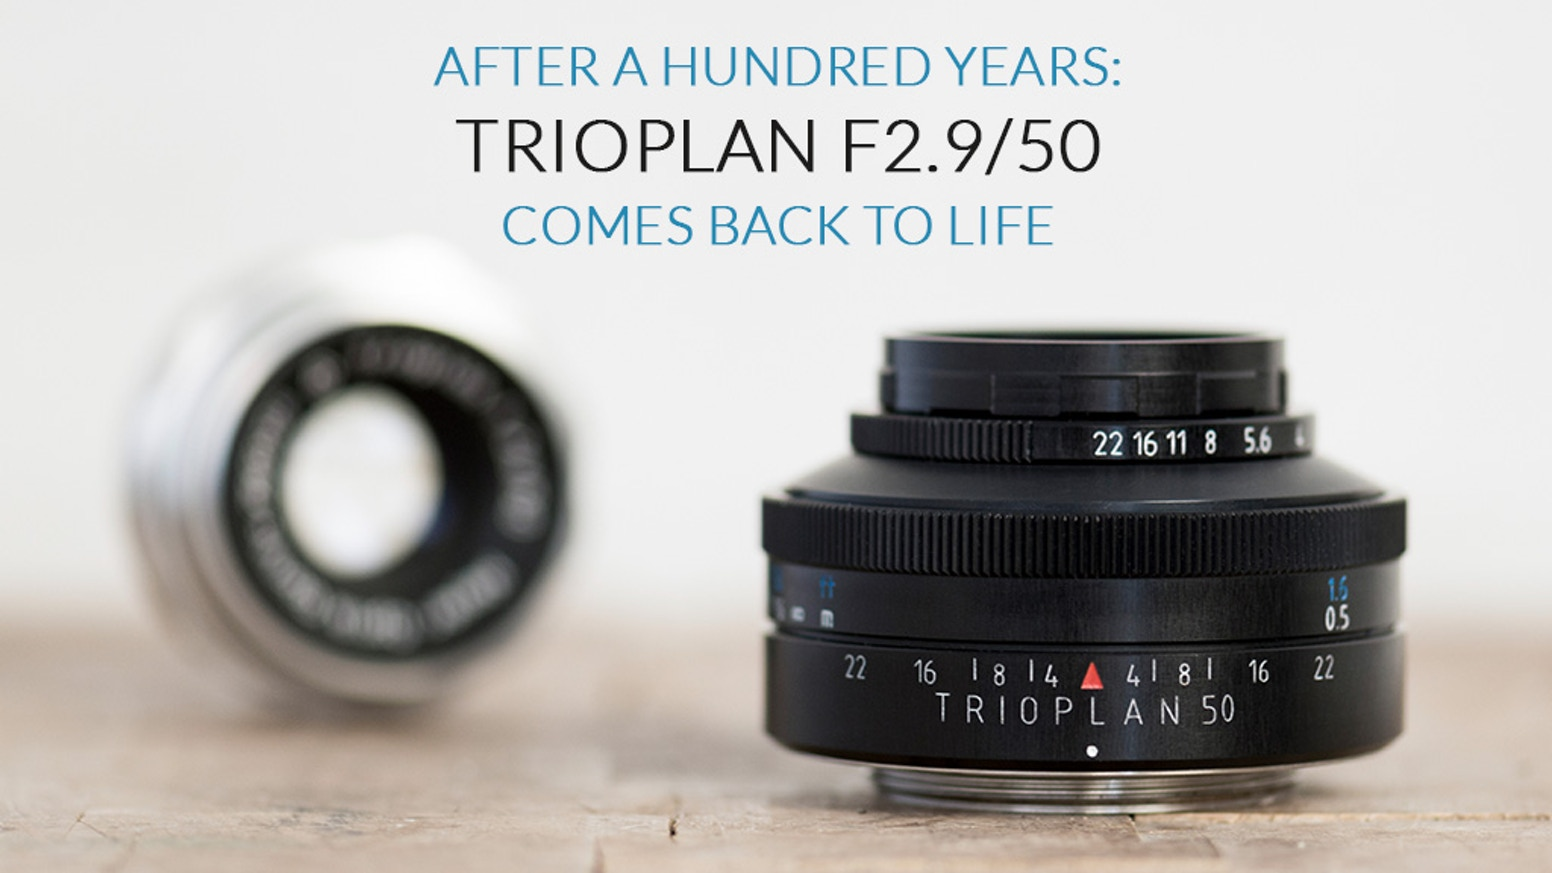 Celebrate the 100th anniversary of Trioplan lenses by supporting the modern version of our ultimate art lens, the Trioplan f2.9/50.